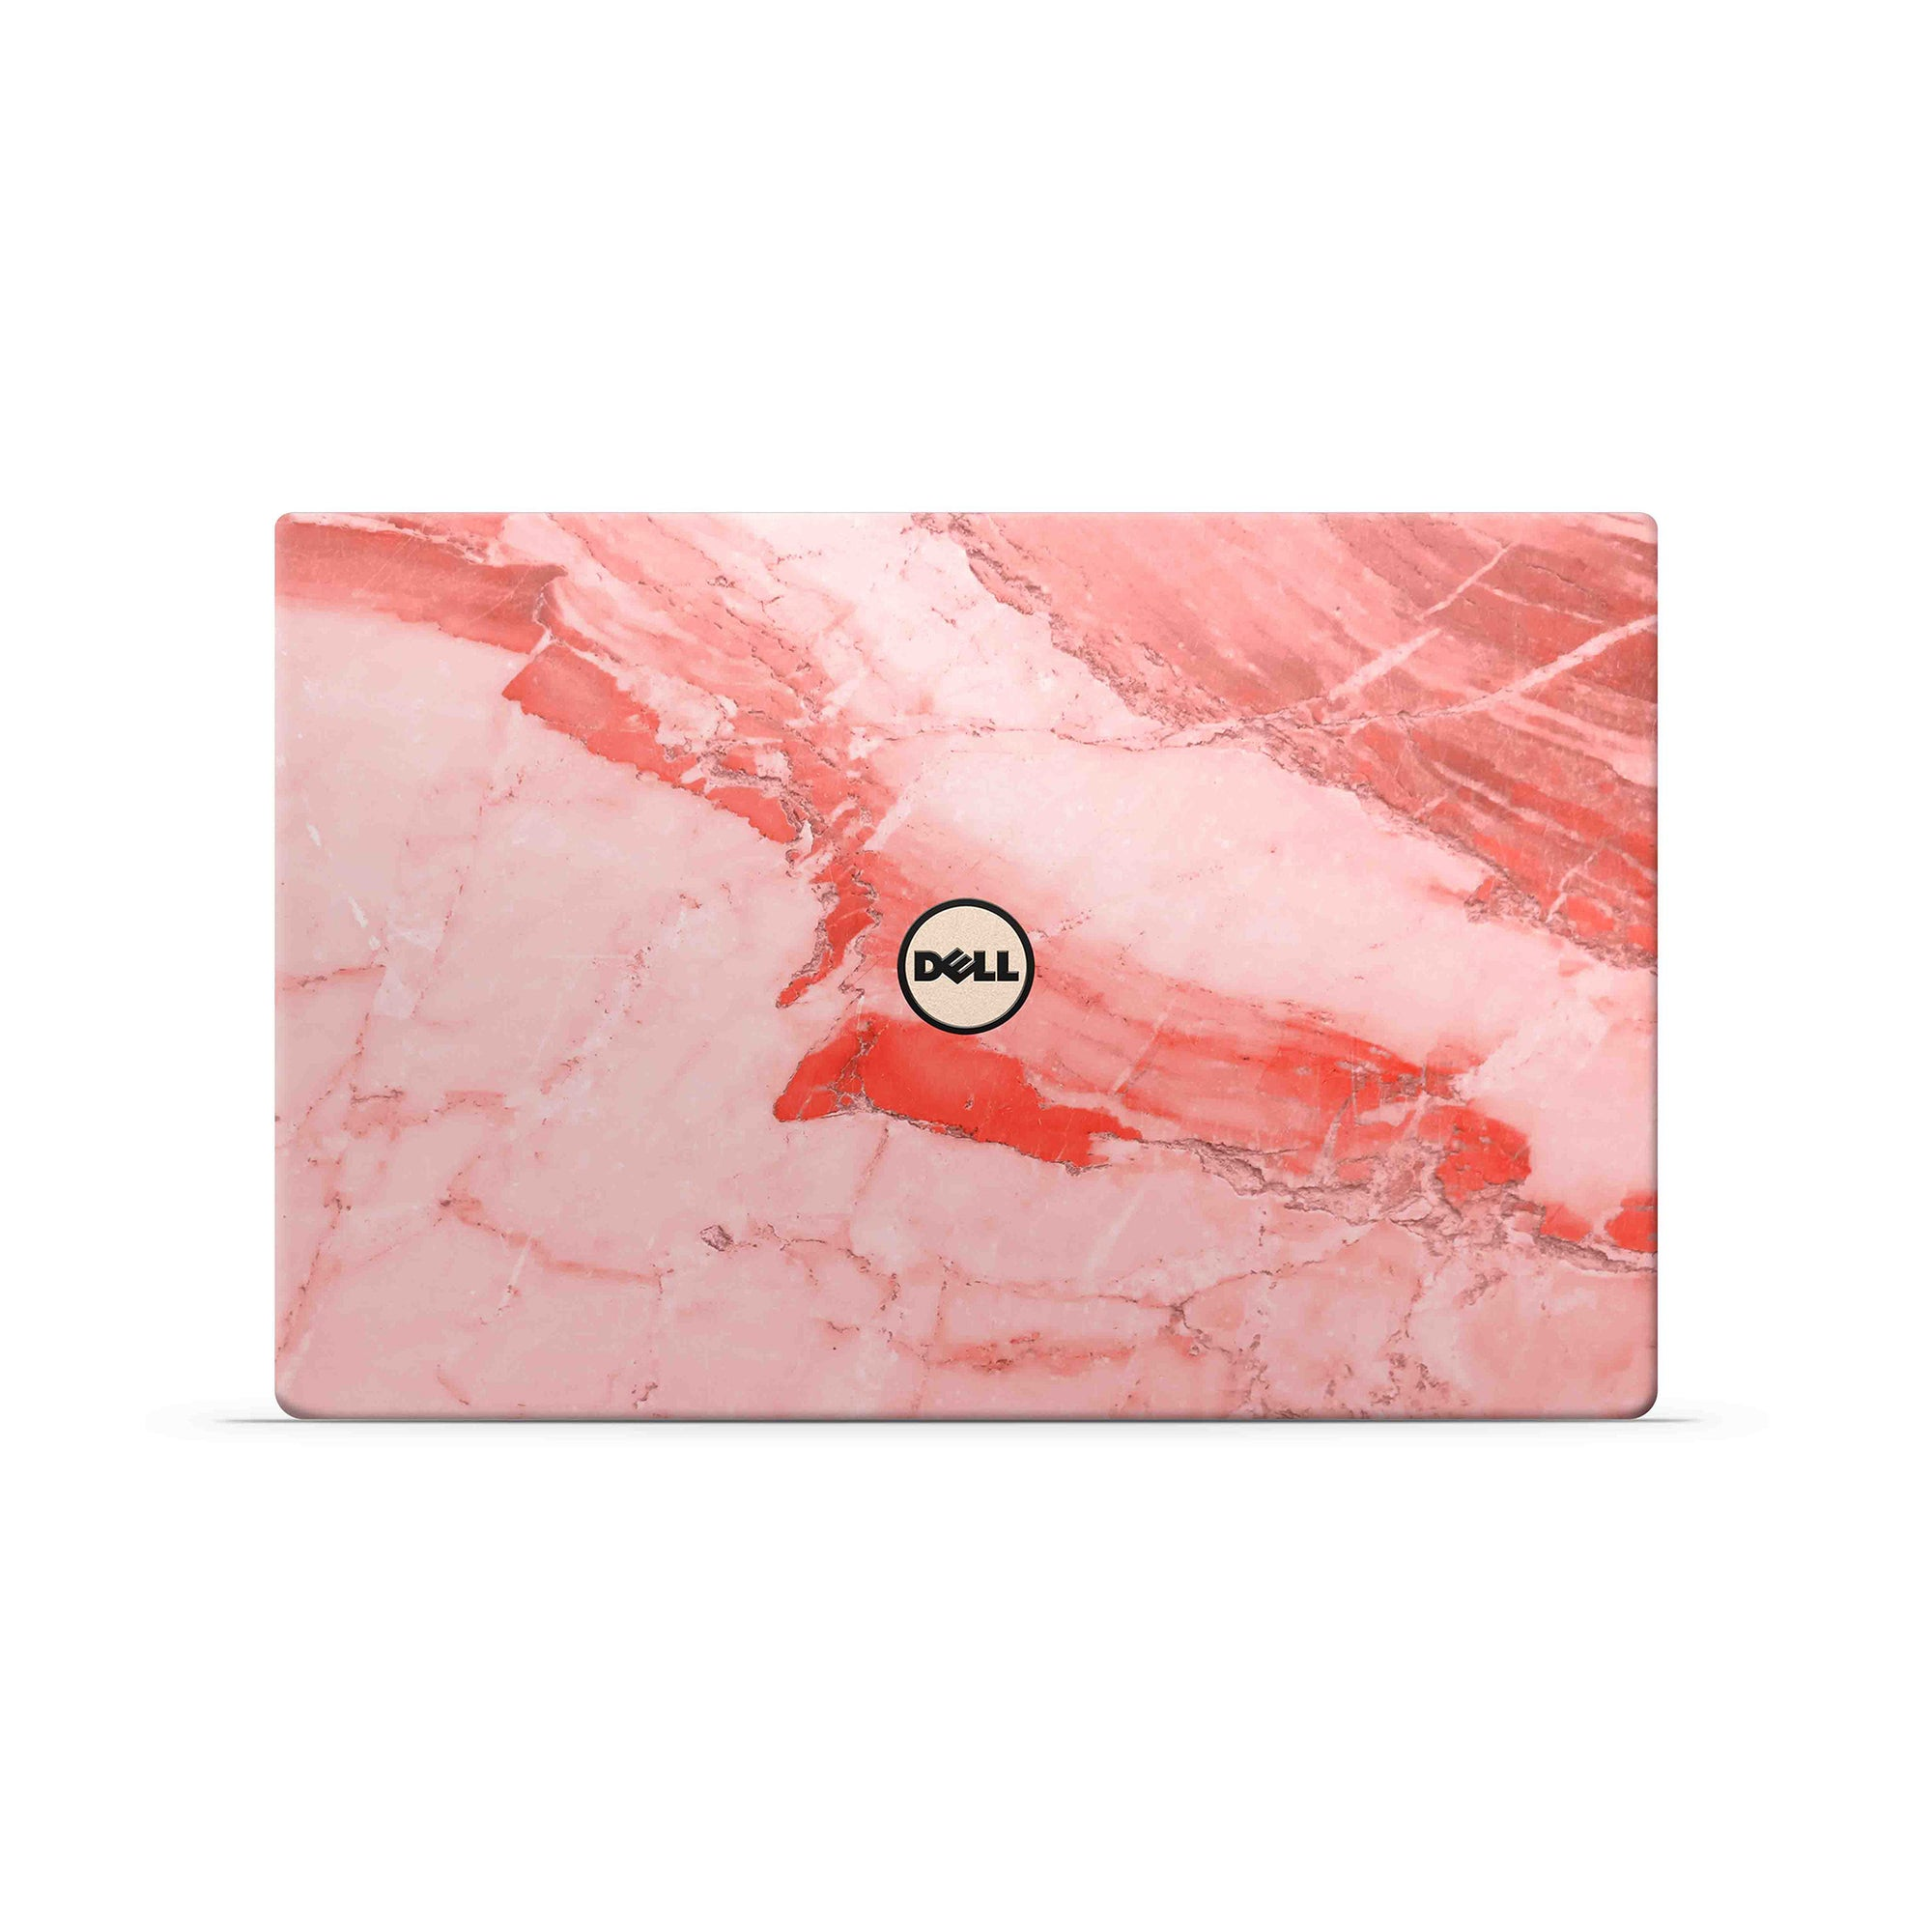 Coral Marble XPS 13 (9300) Skin